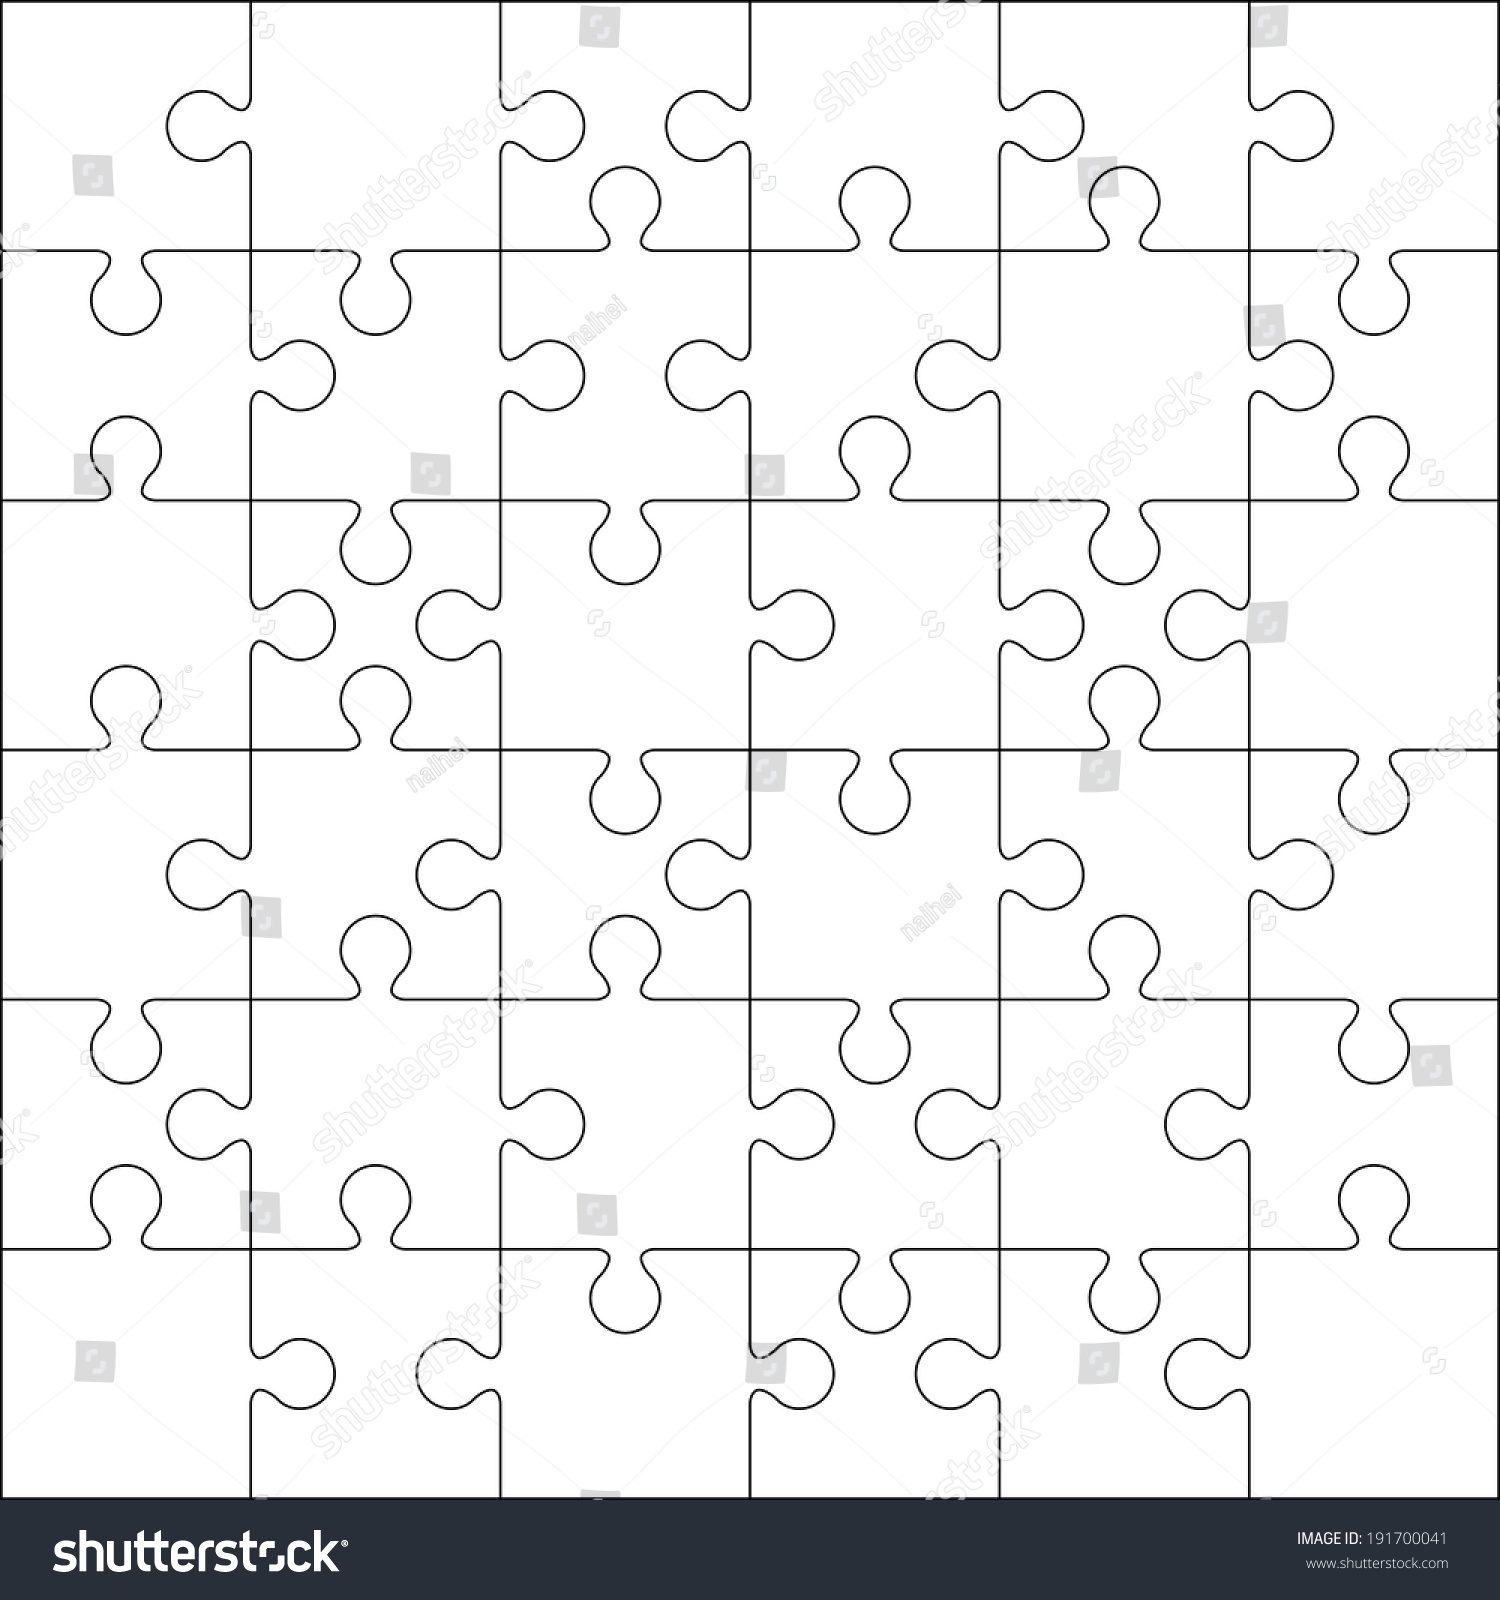 36 Jigsaw Puzzle Blank Template Cutting Stock Vector 191700041 ...